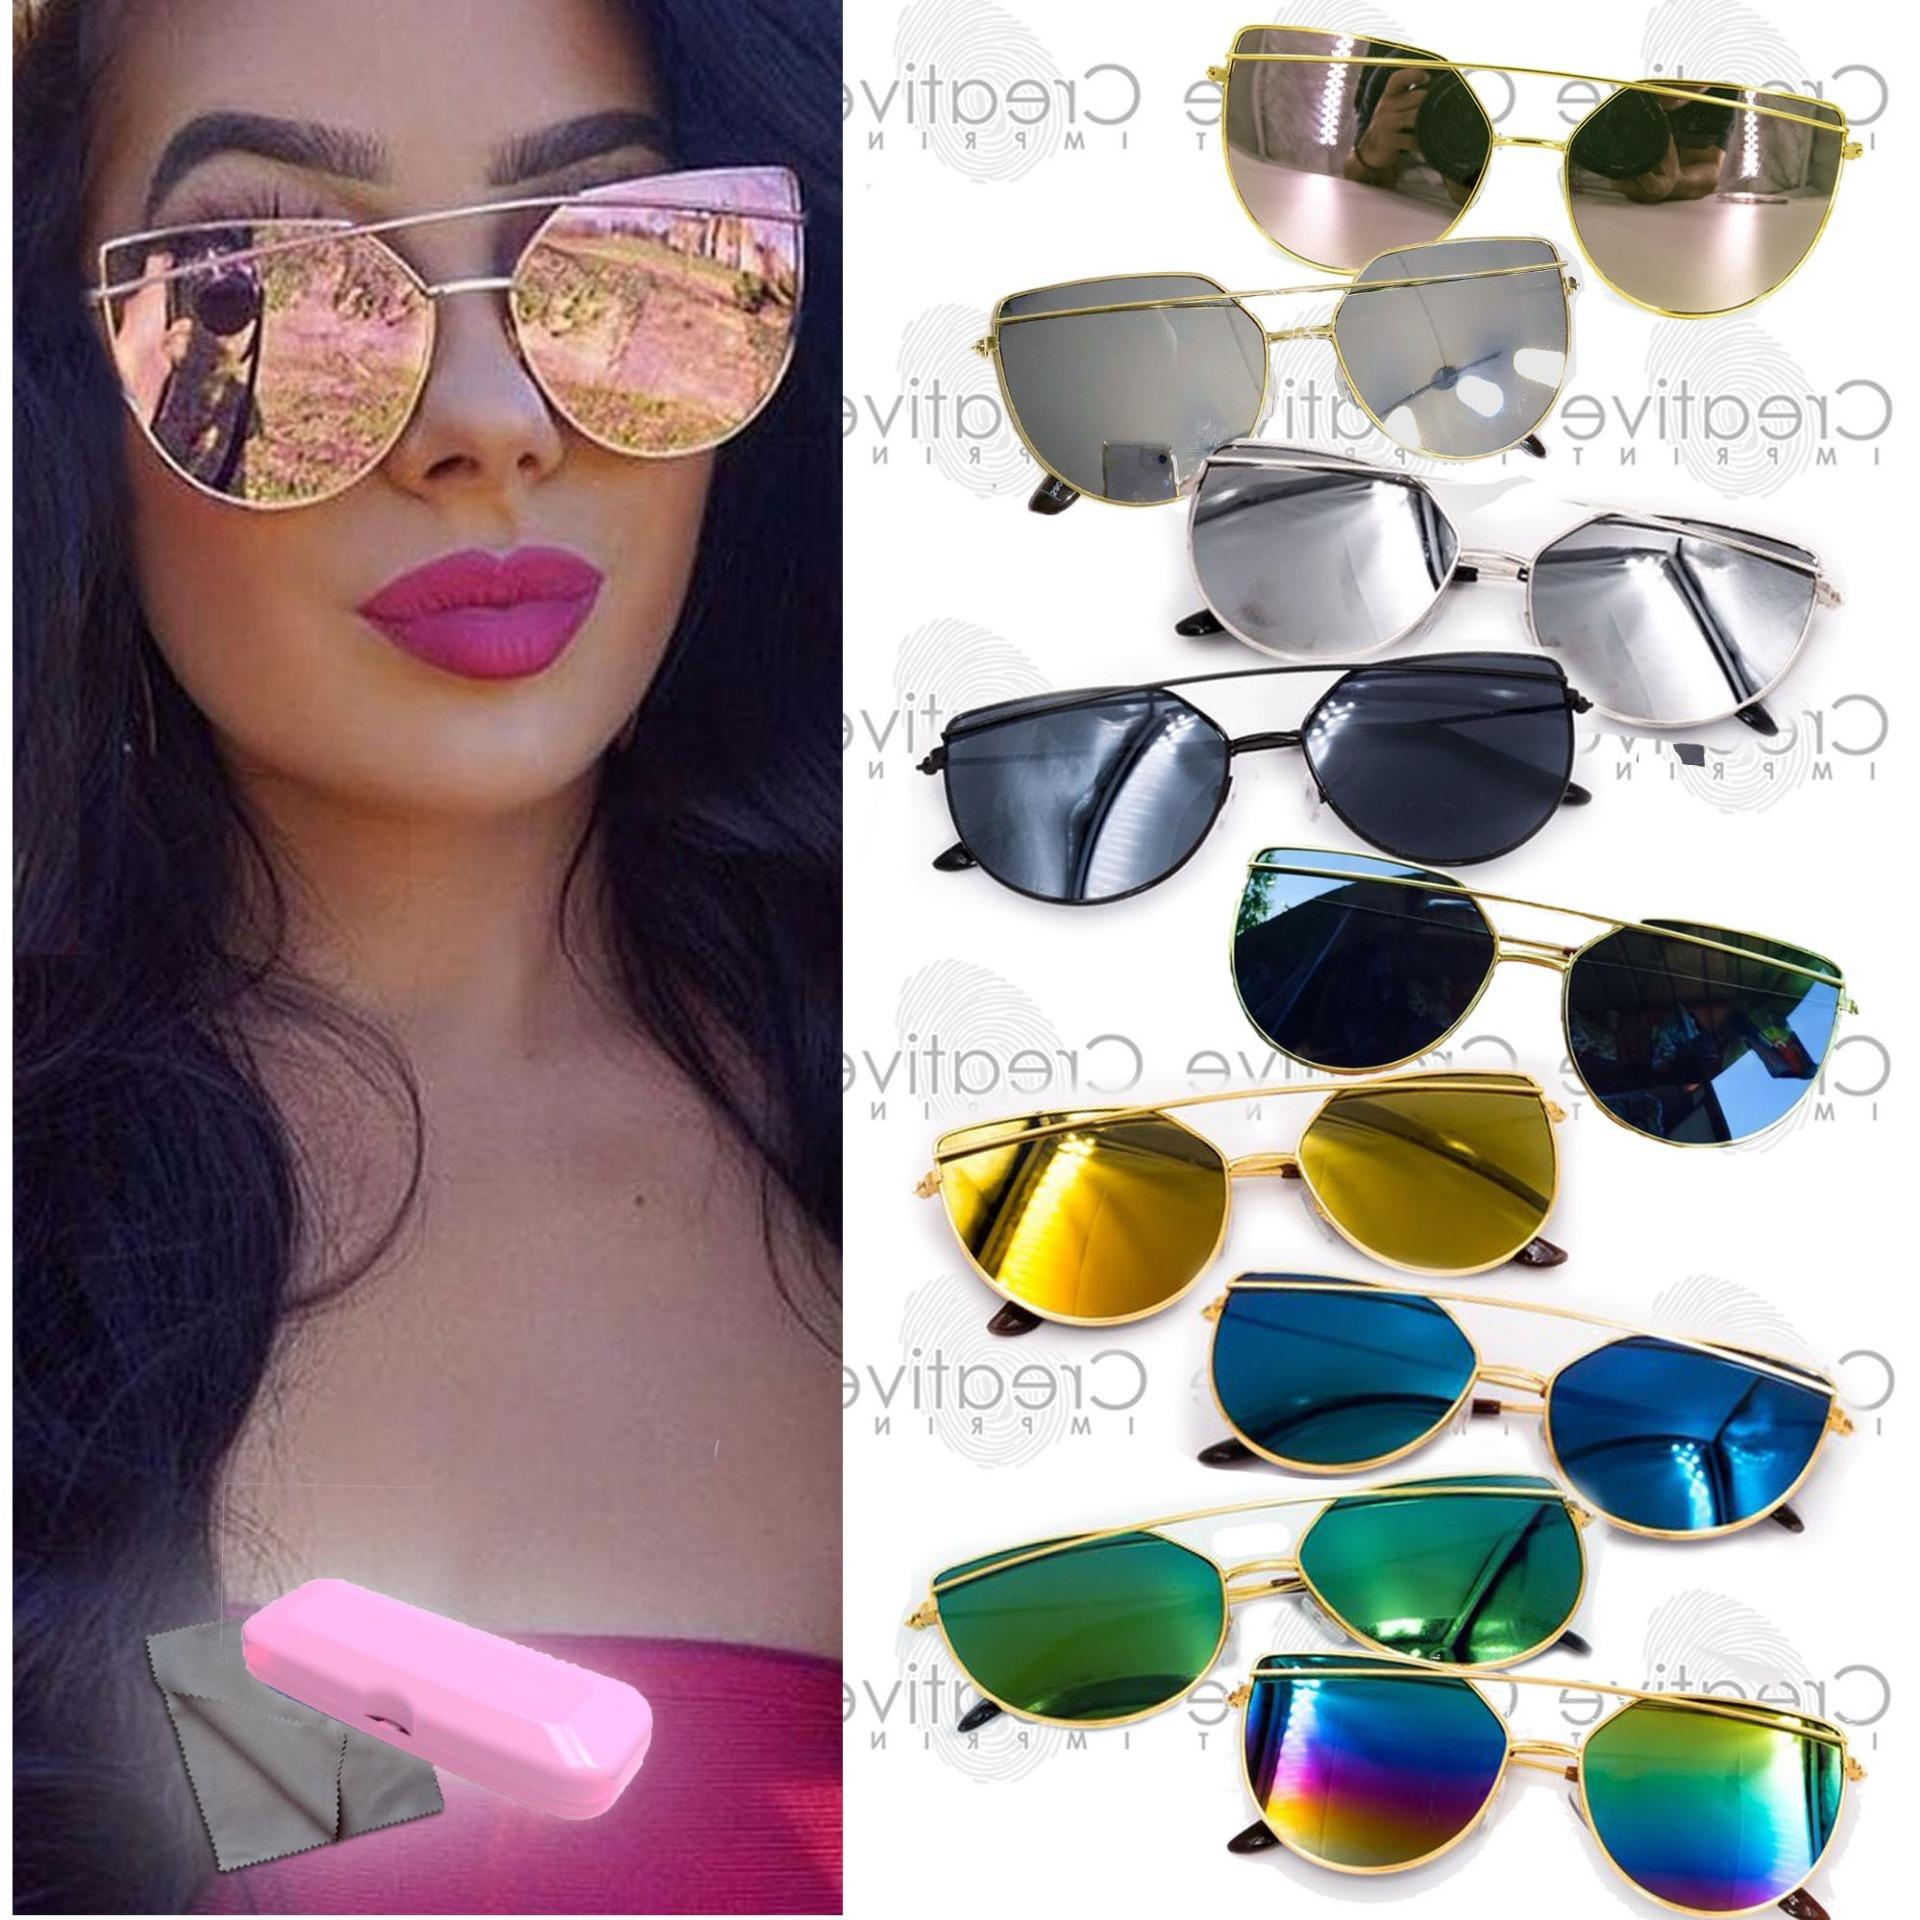 c4f0b9ce57 Double Bridge Cat Eye Flat Sunnies Sunglasses (FREE CASE WIPER) Shades  Light Metal Lens